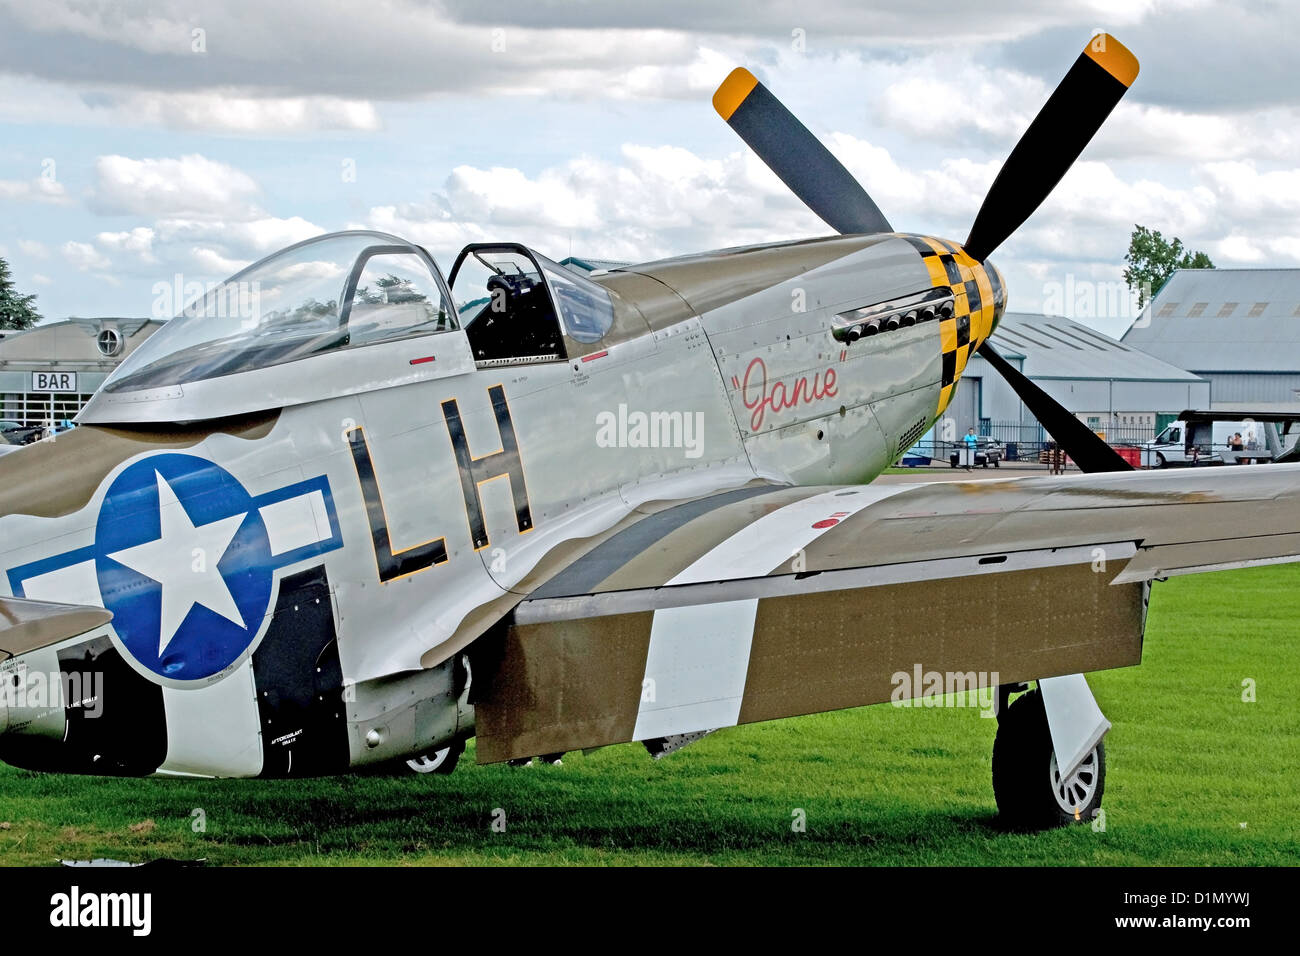 Restored airworthy P-51D Mustang American fighter aeroplane at the Sywell Air Show - Stock Image